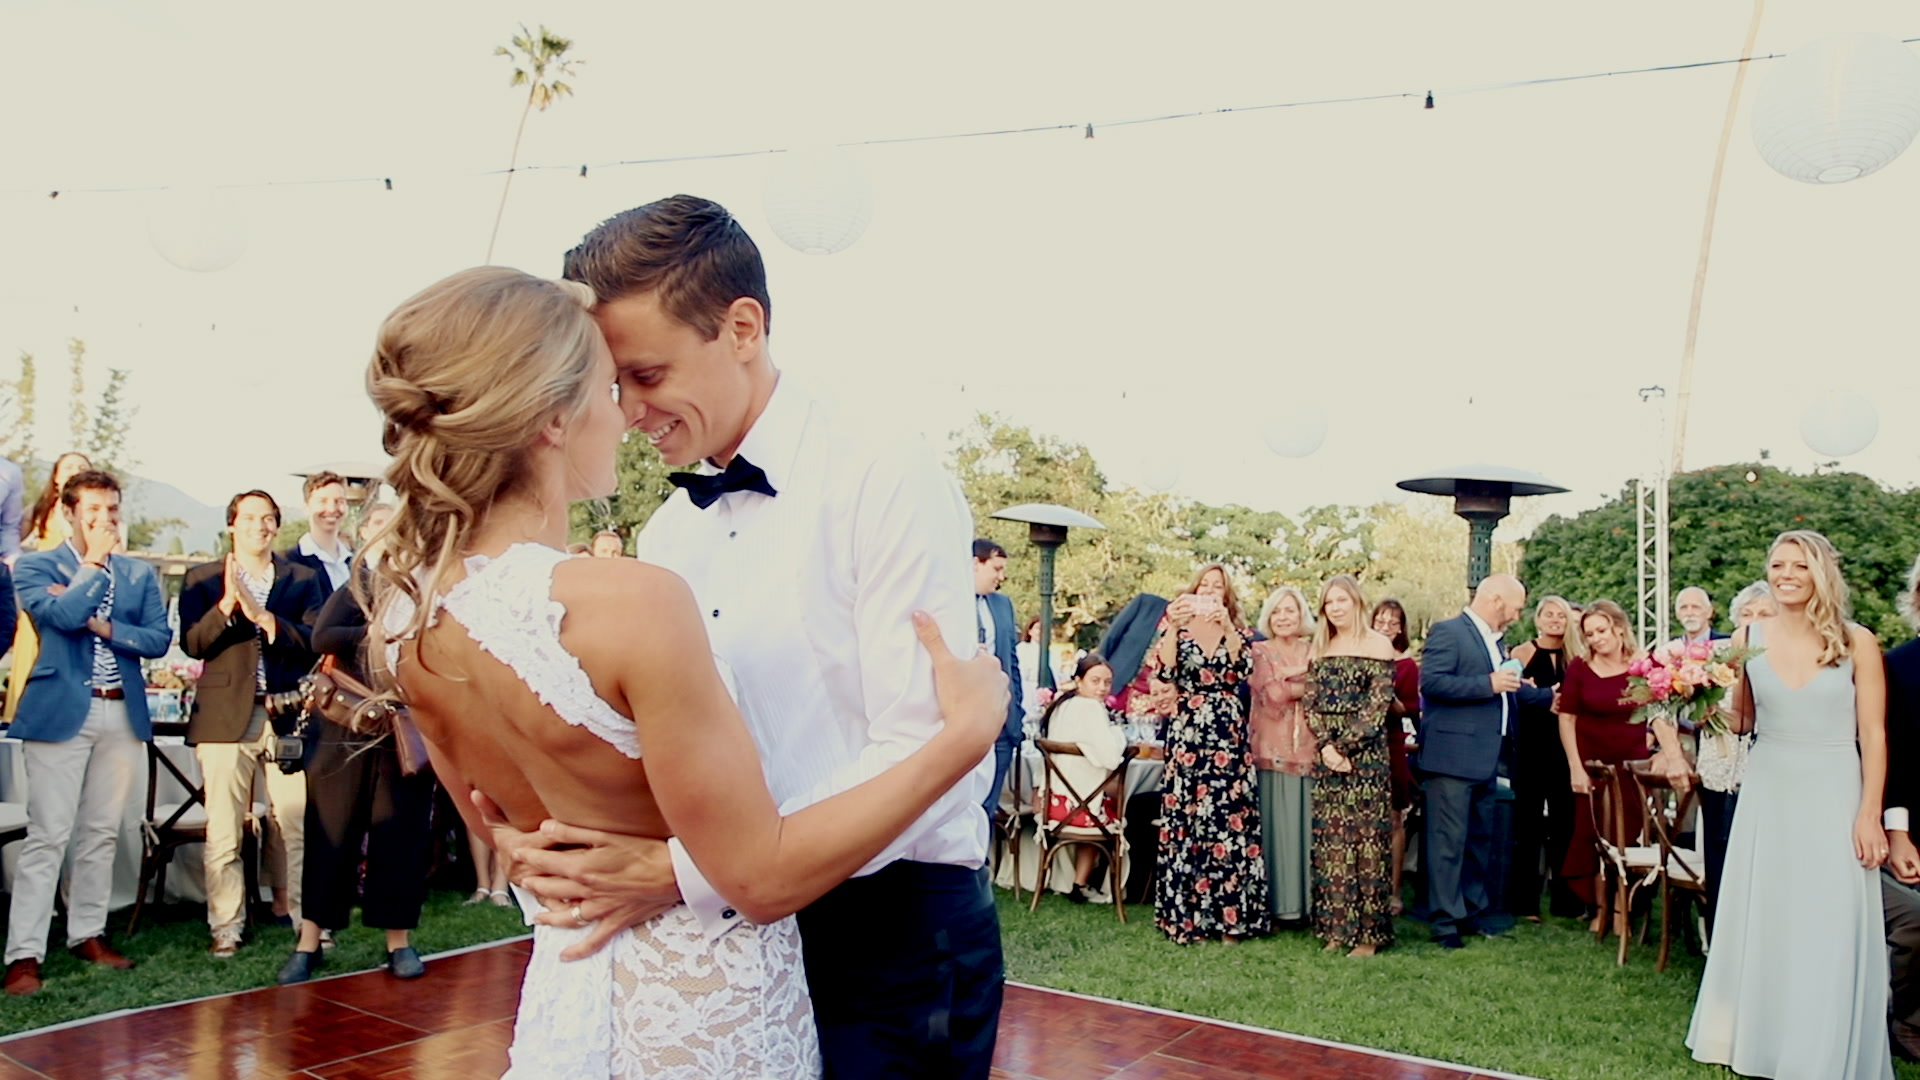 Savannah + Chris | Santa Barbara, California | Santa Barbara Zoo